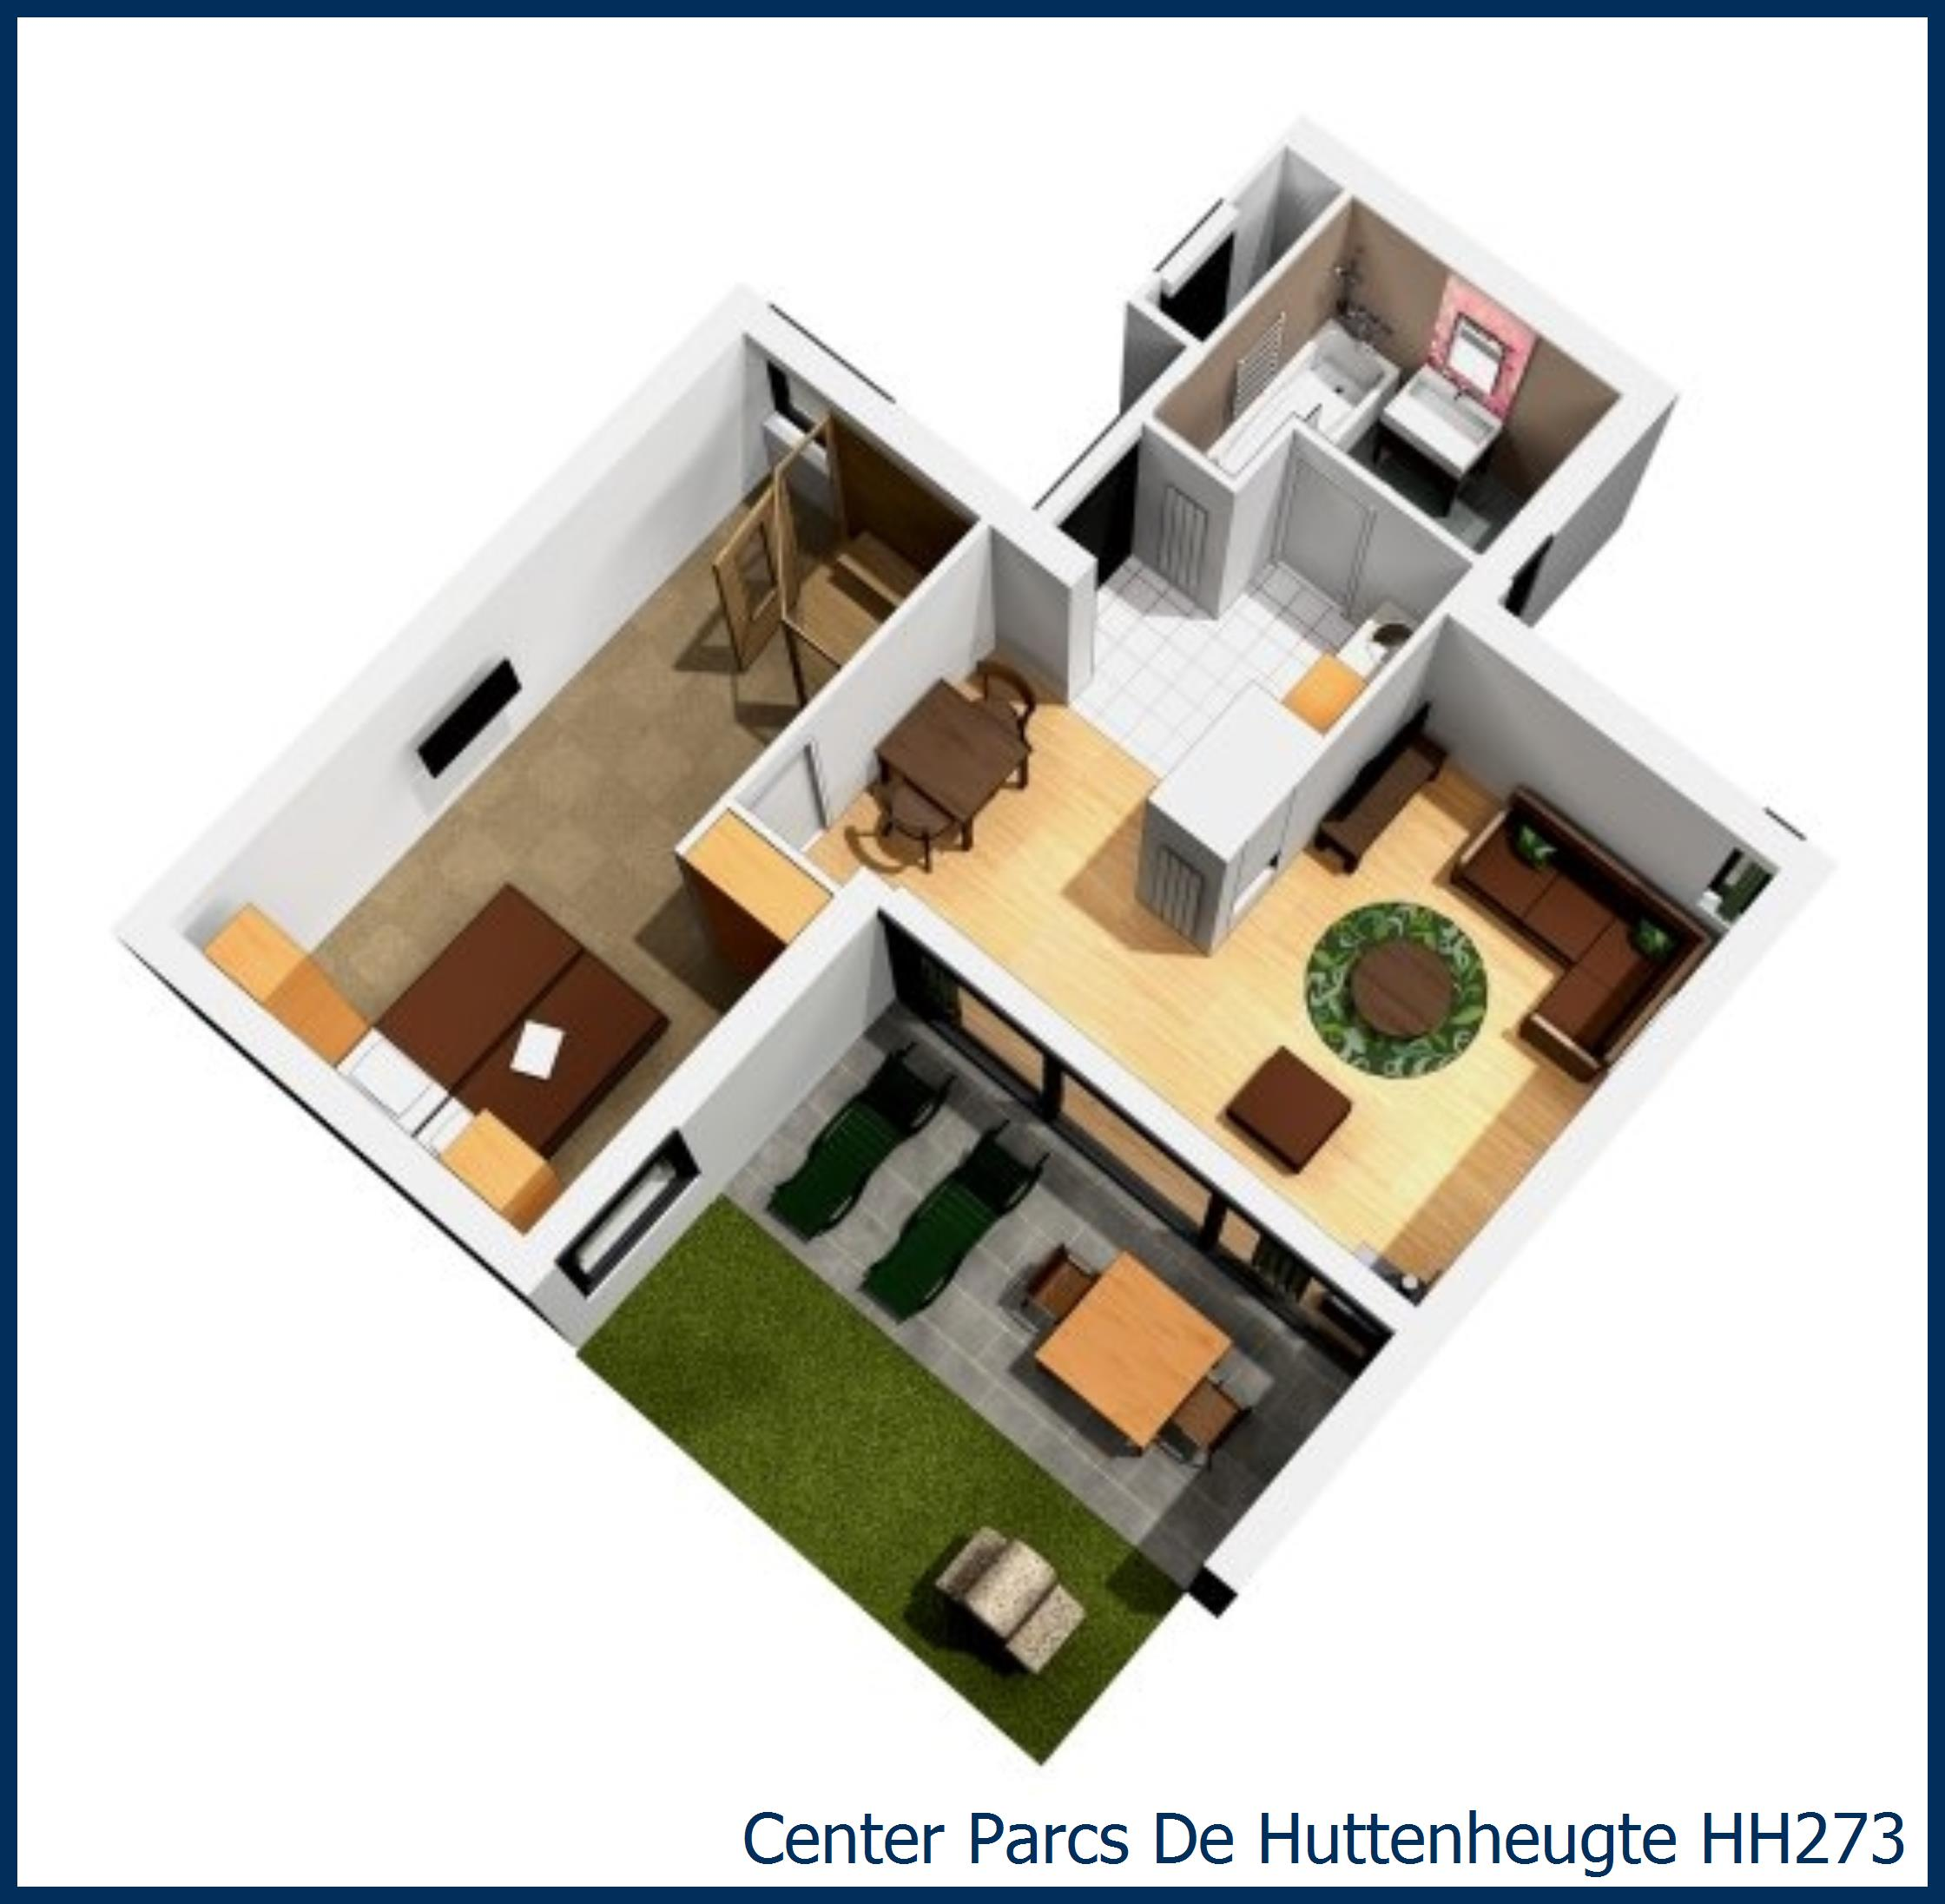 VIP cottage HH273 in De Huttenheugte